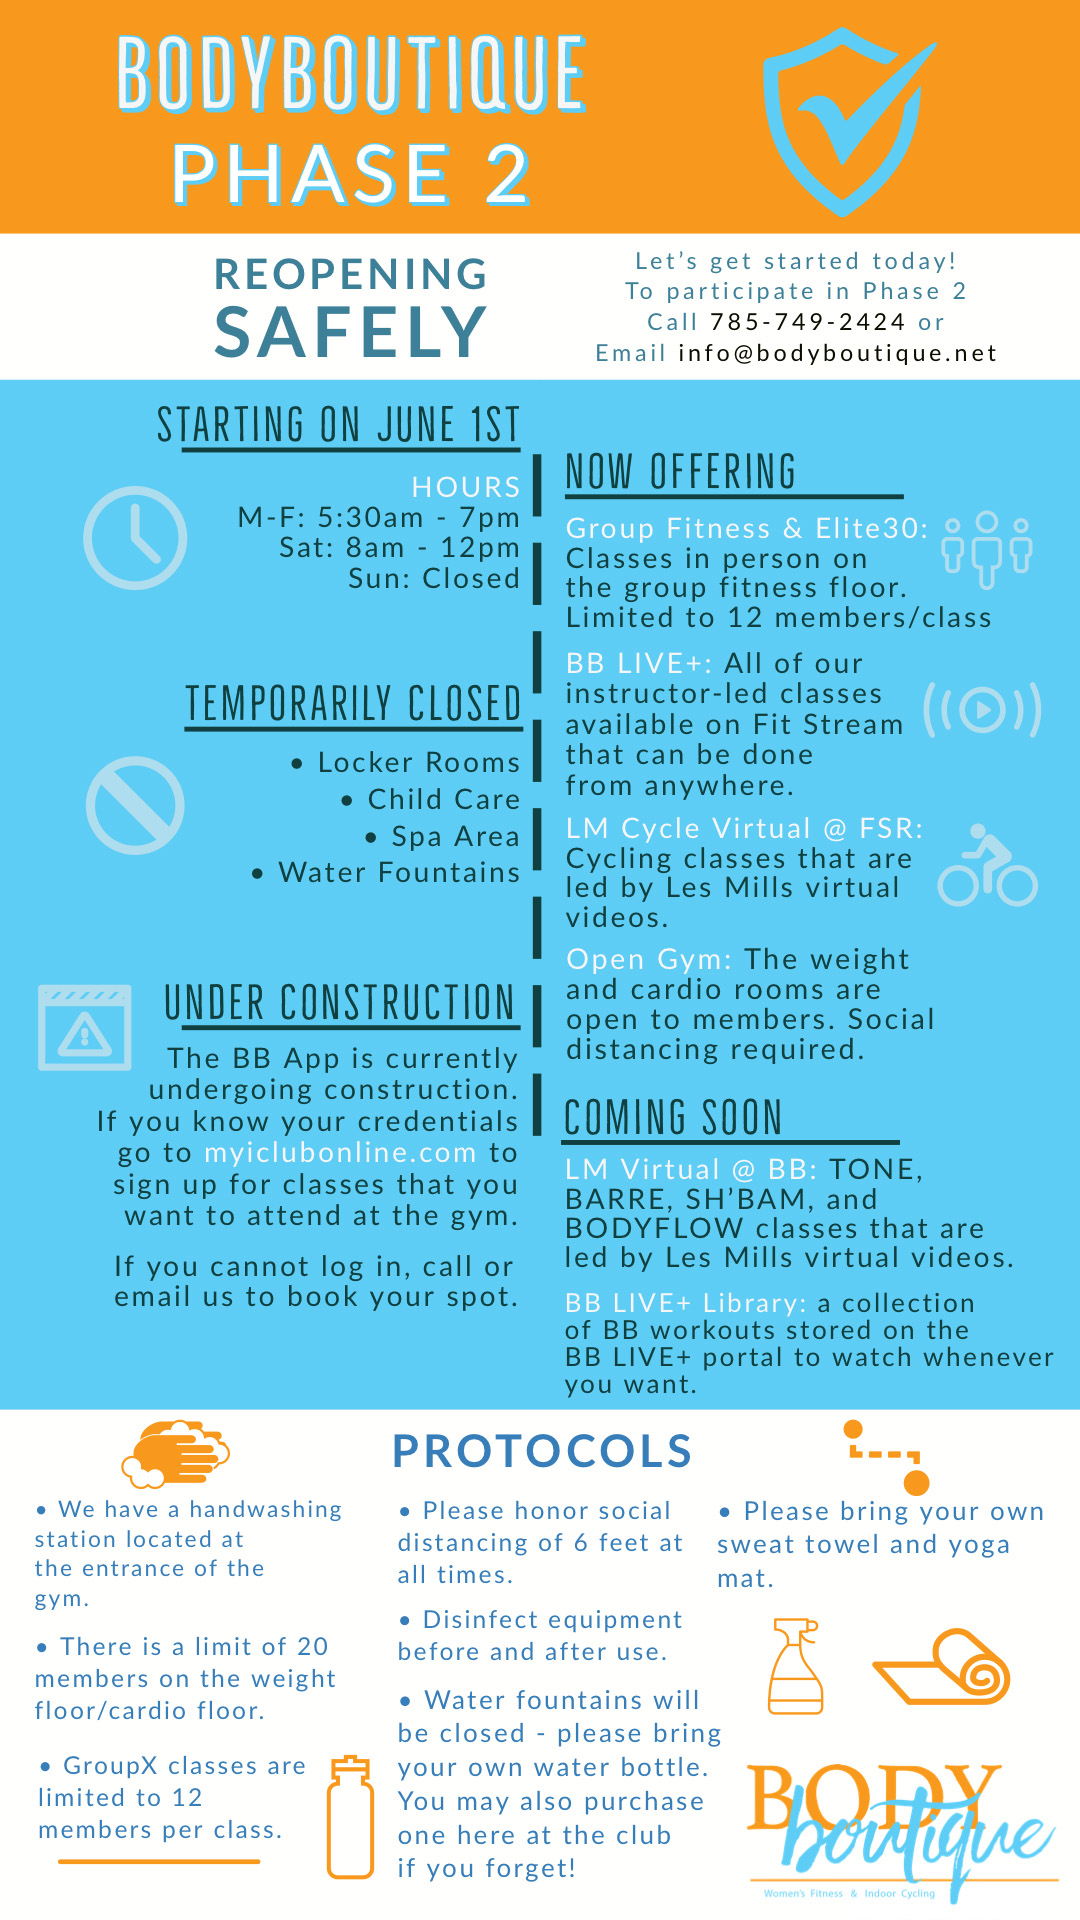 Body Boutique Phase 2 Protocols Infographic